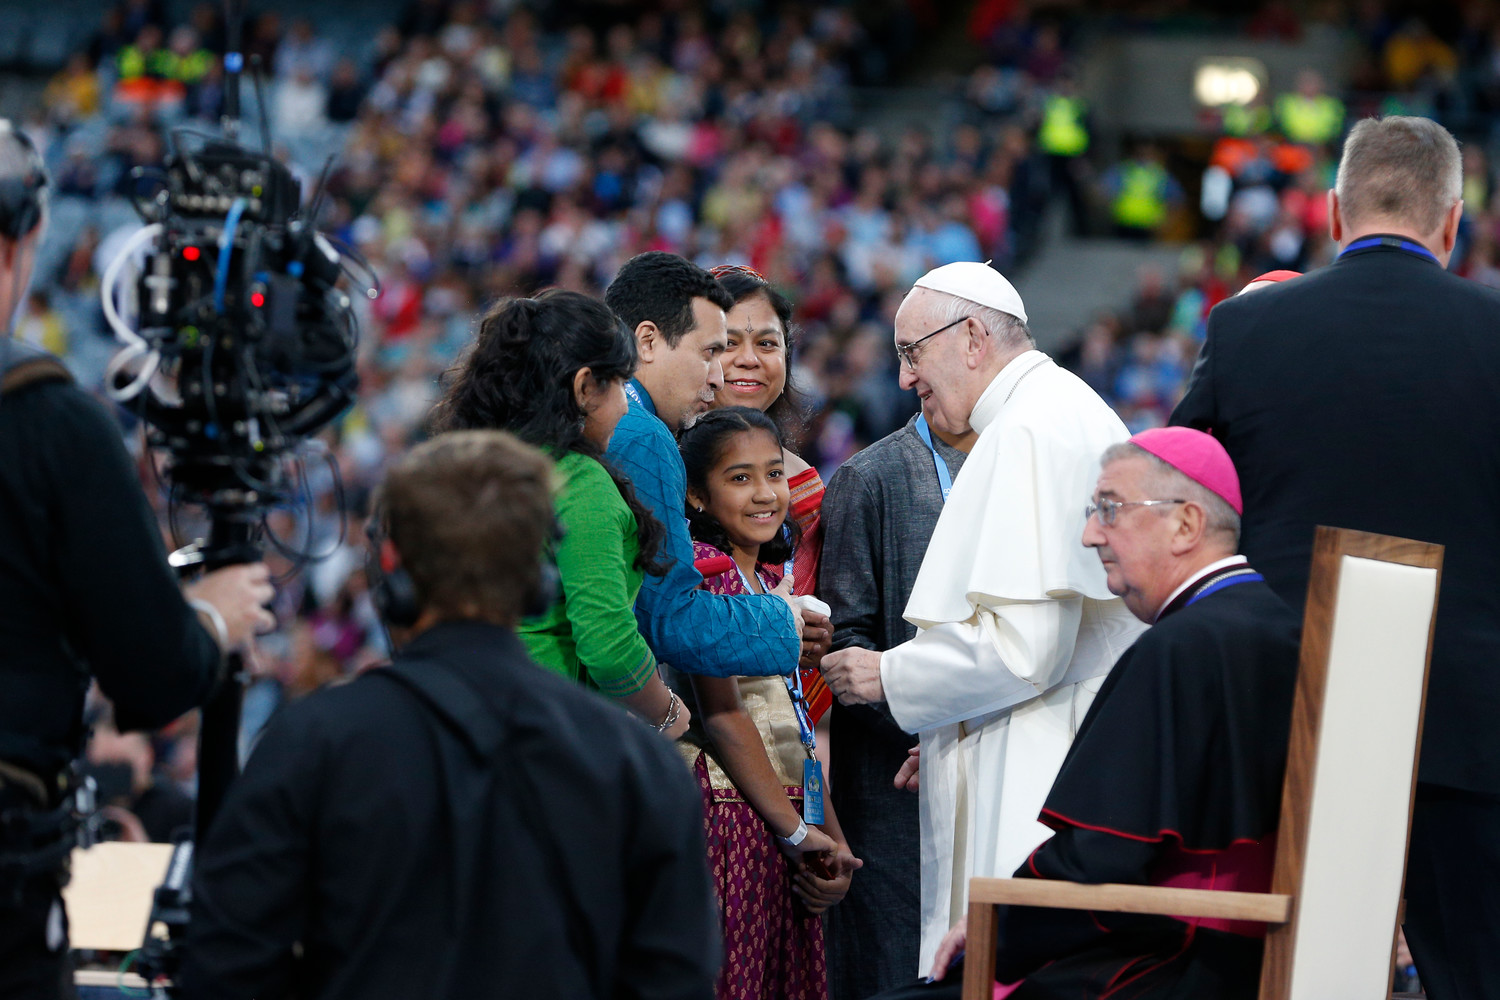 Pope Francis meets with a family that gave testimony during the Festival of Families in Croke Park stadium in Dublin Aug. 25.